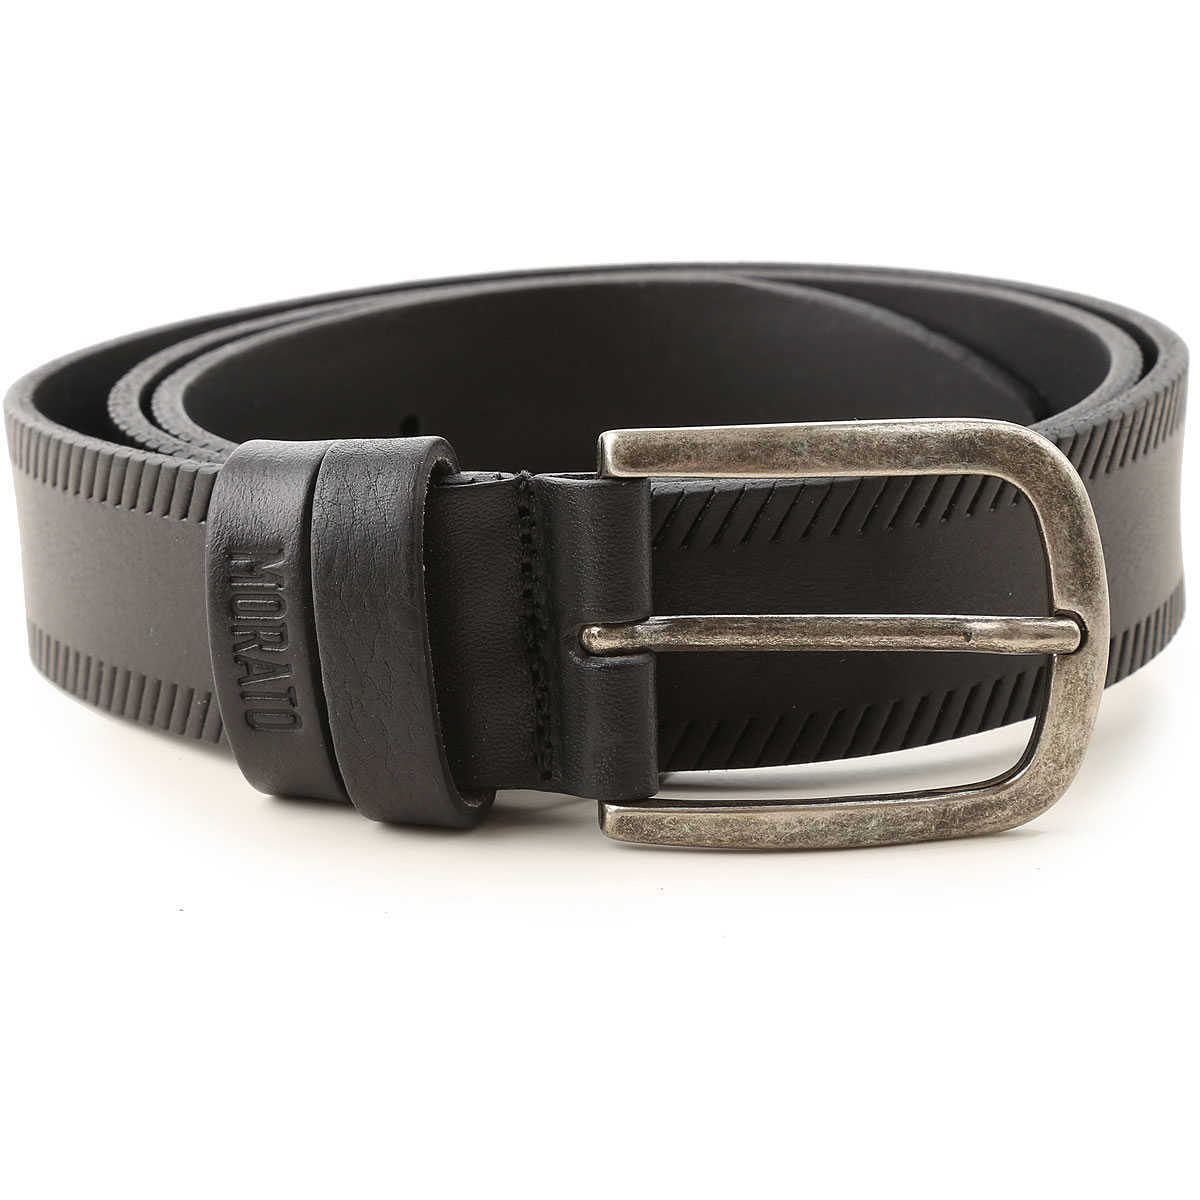 Antony Morato Belts Black UK - GOOFASH